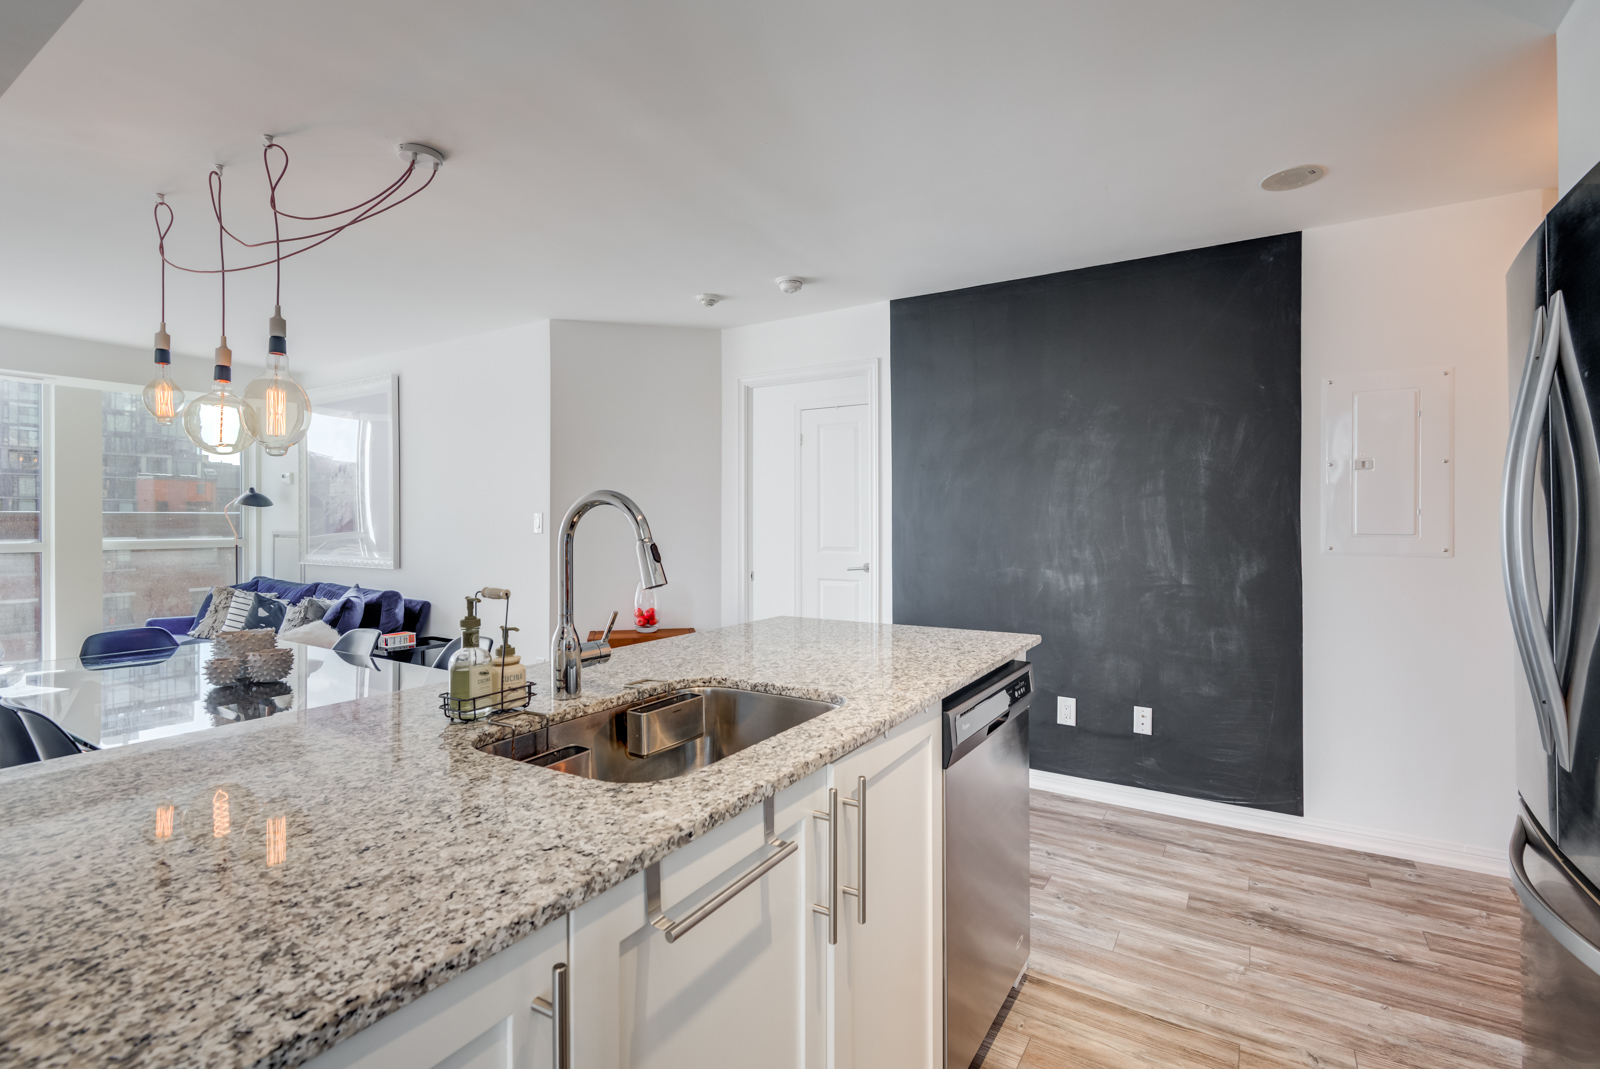 Granite counter-top, chrome faucet and blackboard wall of kitchen at 400 Adelaide St E Unit 704 condos in Moss Park.